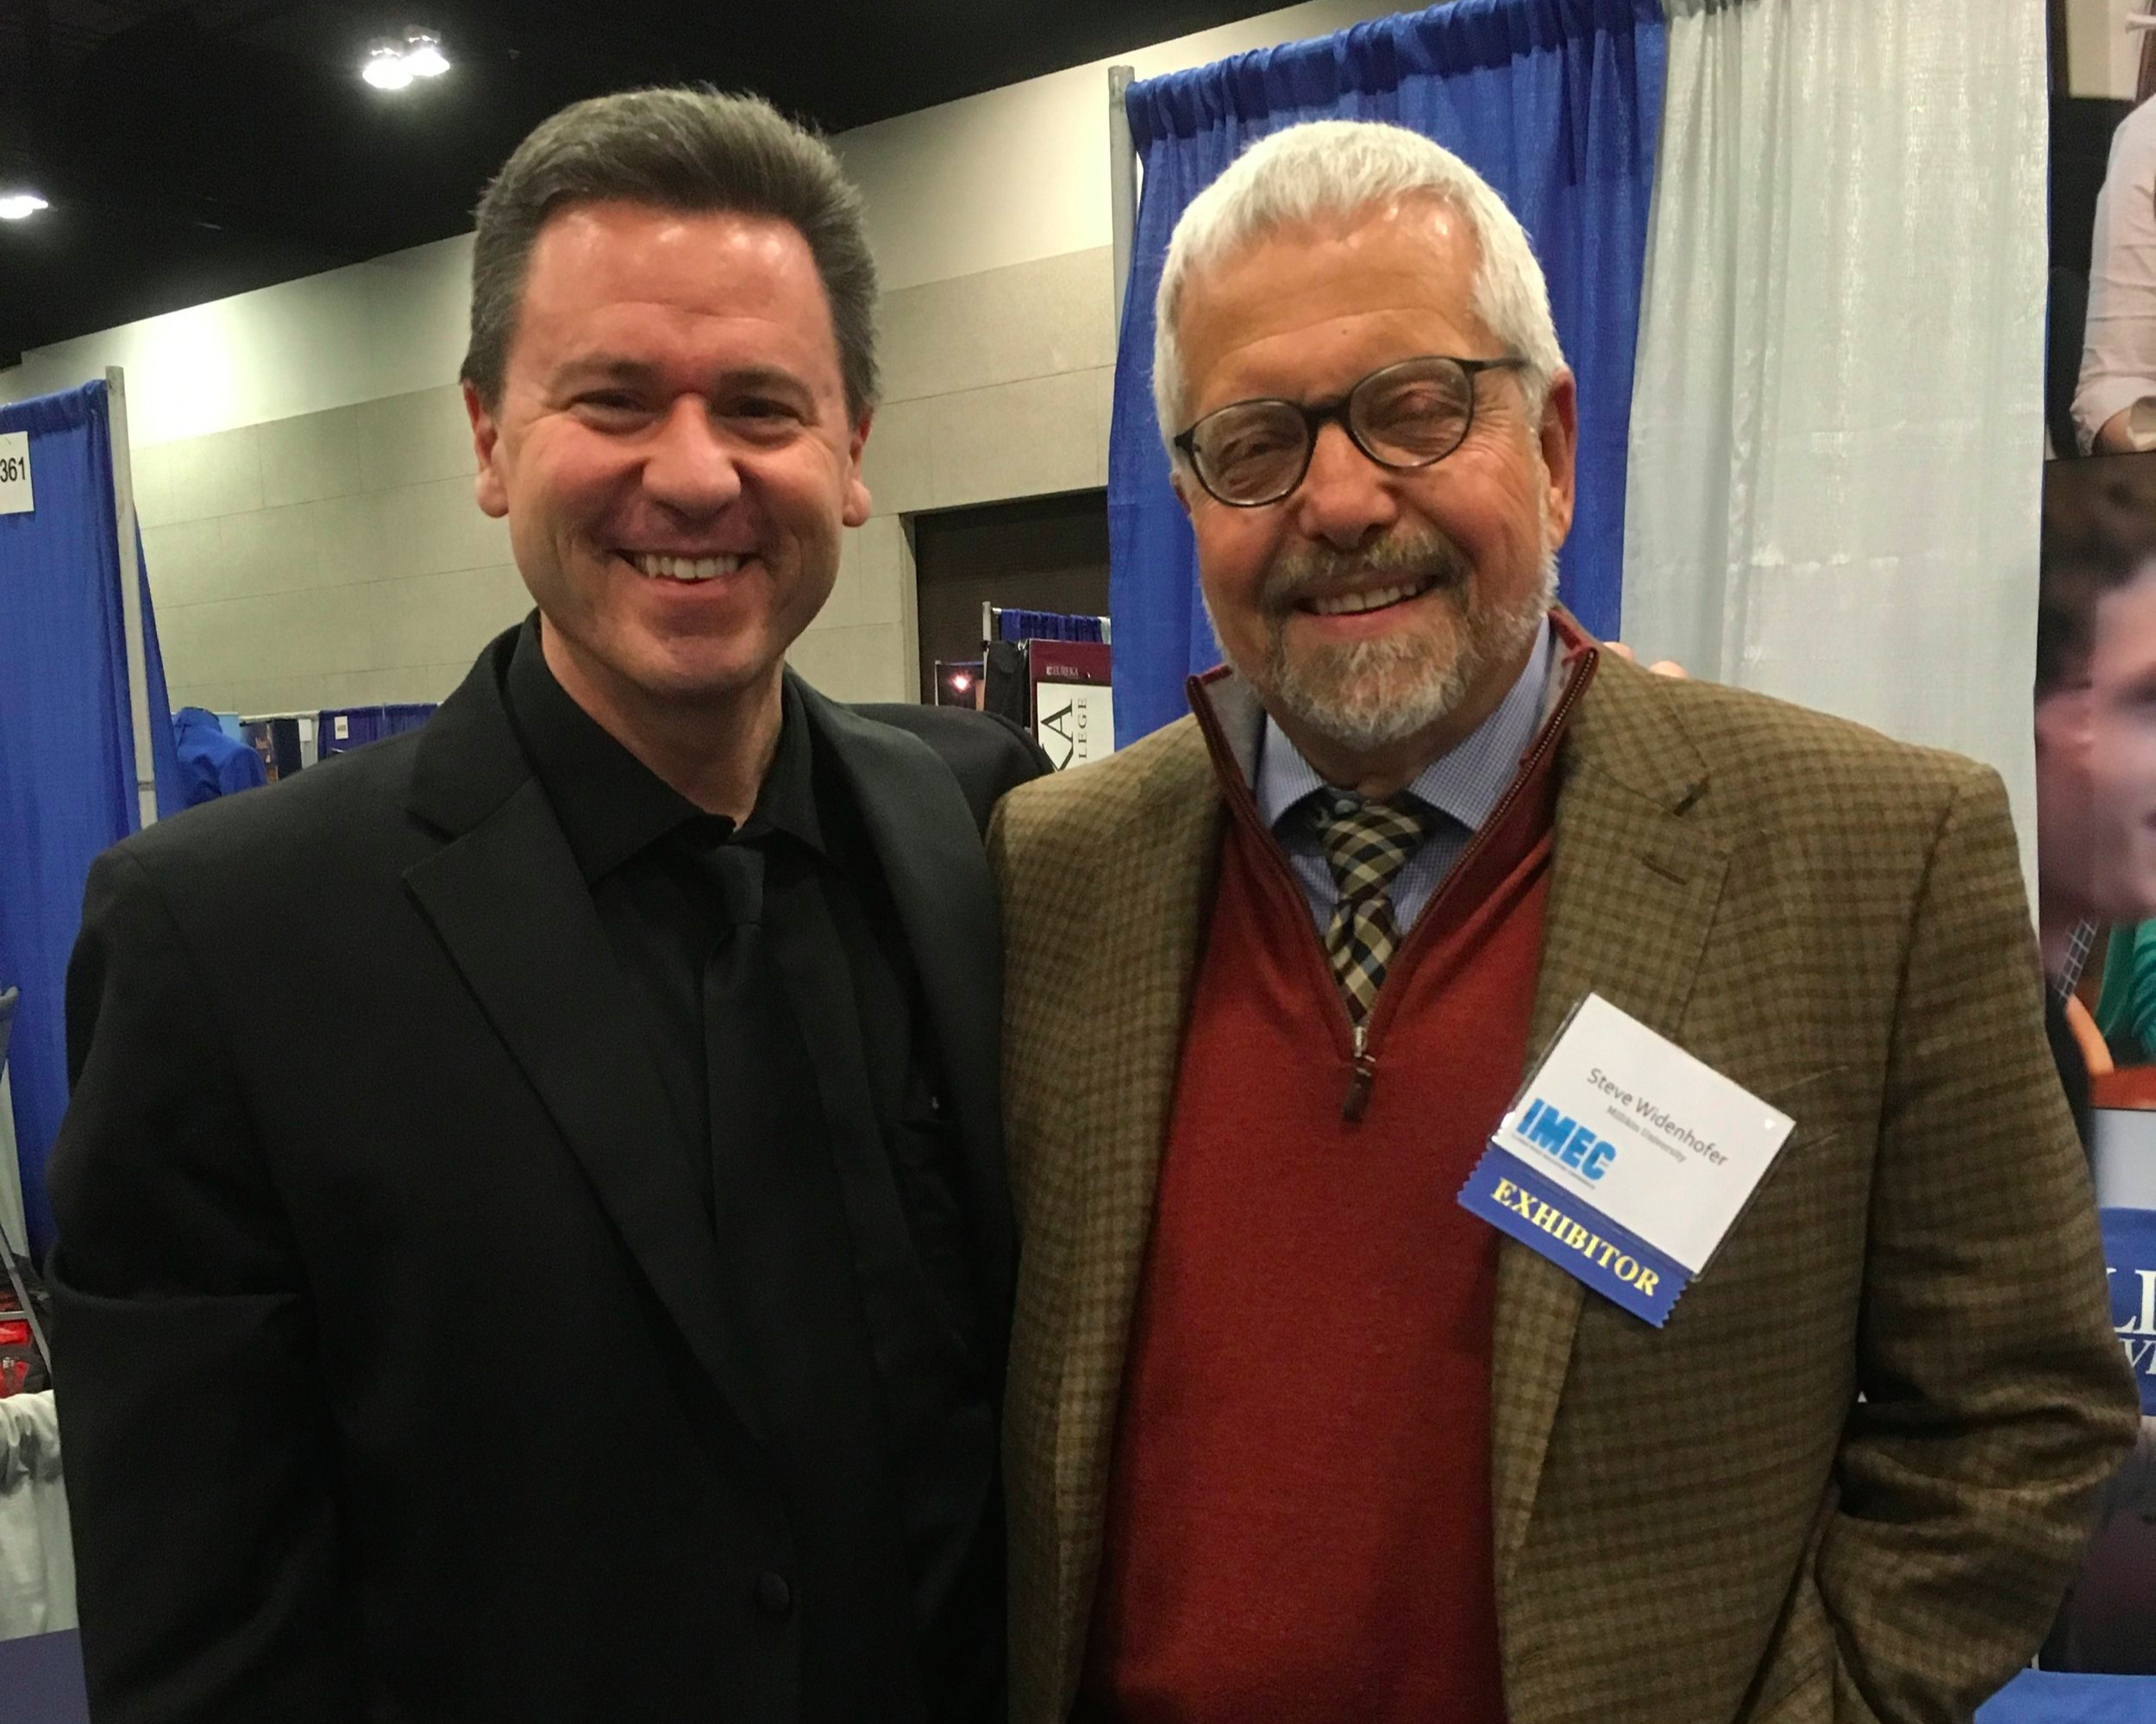 With Steve Widenhofer, January 2017